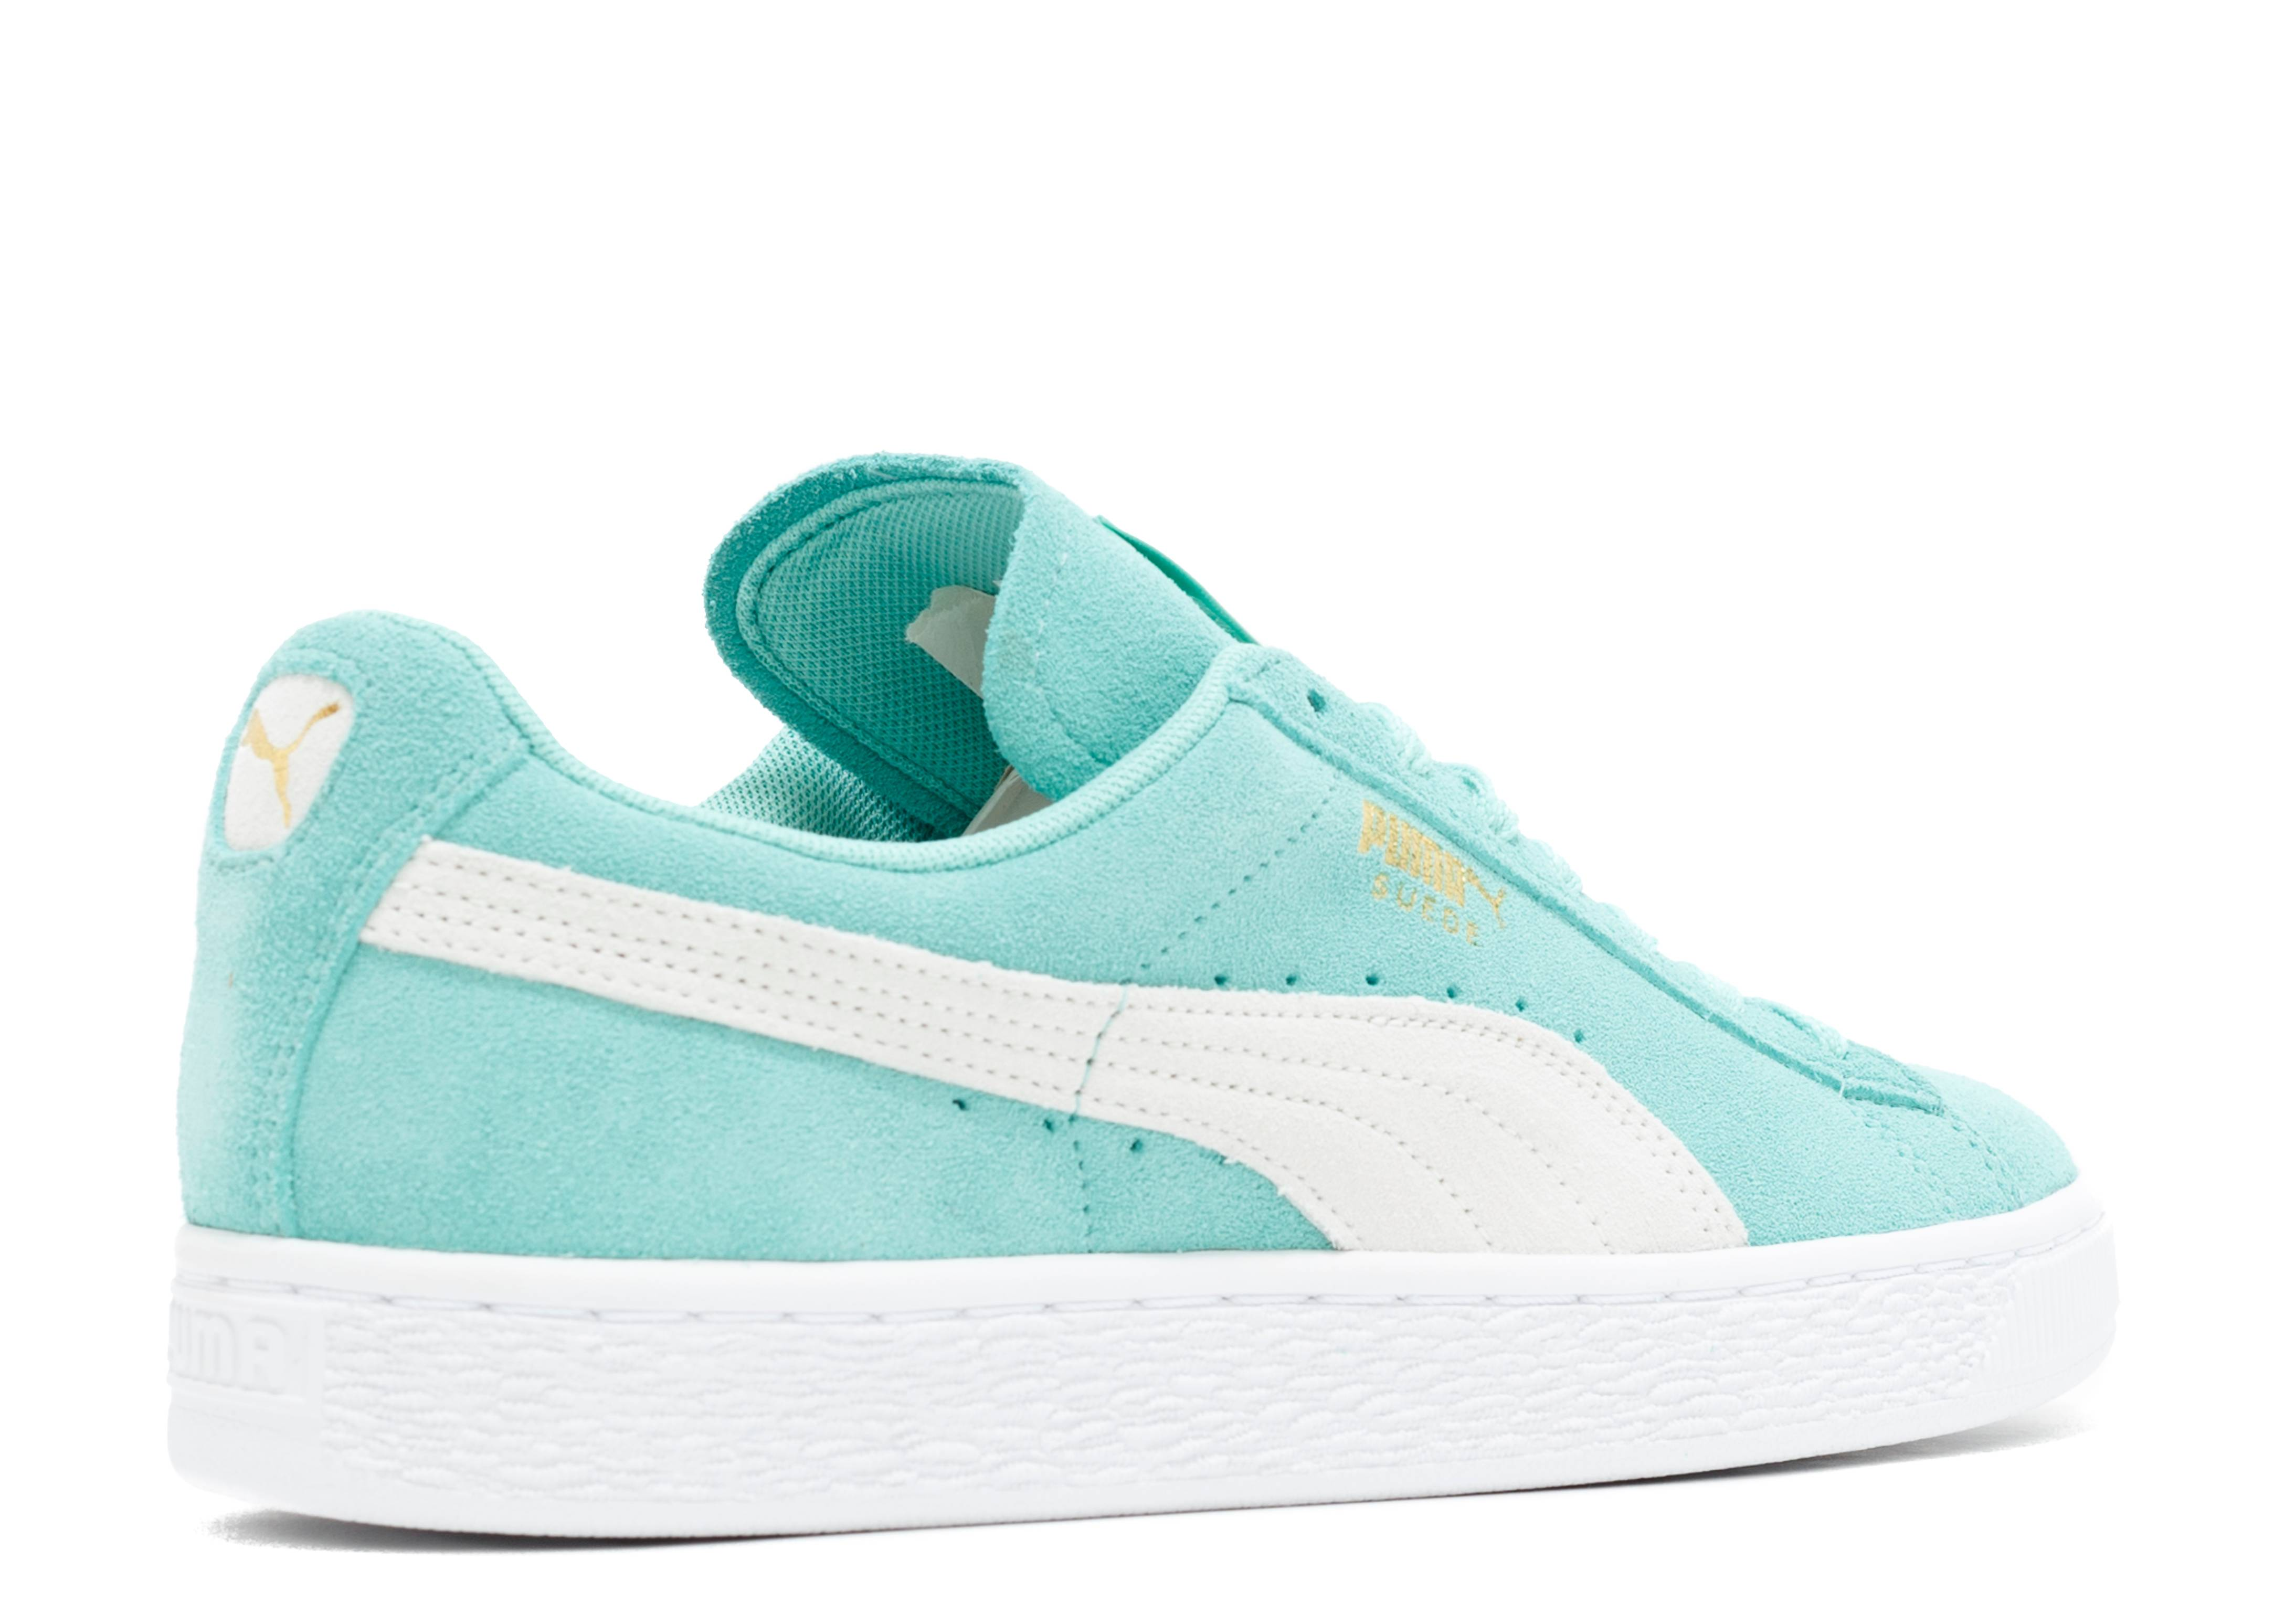 54c72d4d8b3 Suede Classic Wns - Puma - 35546232 - holiday white